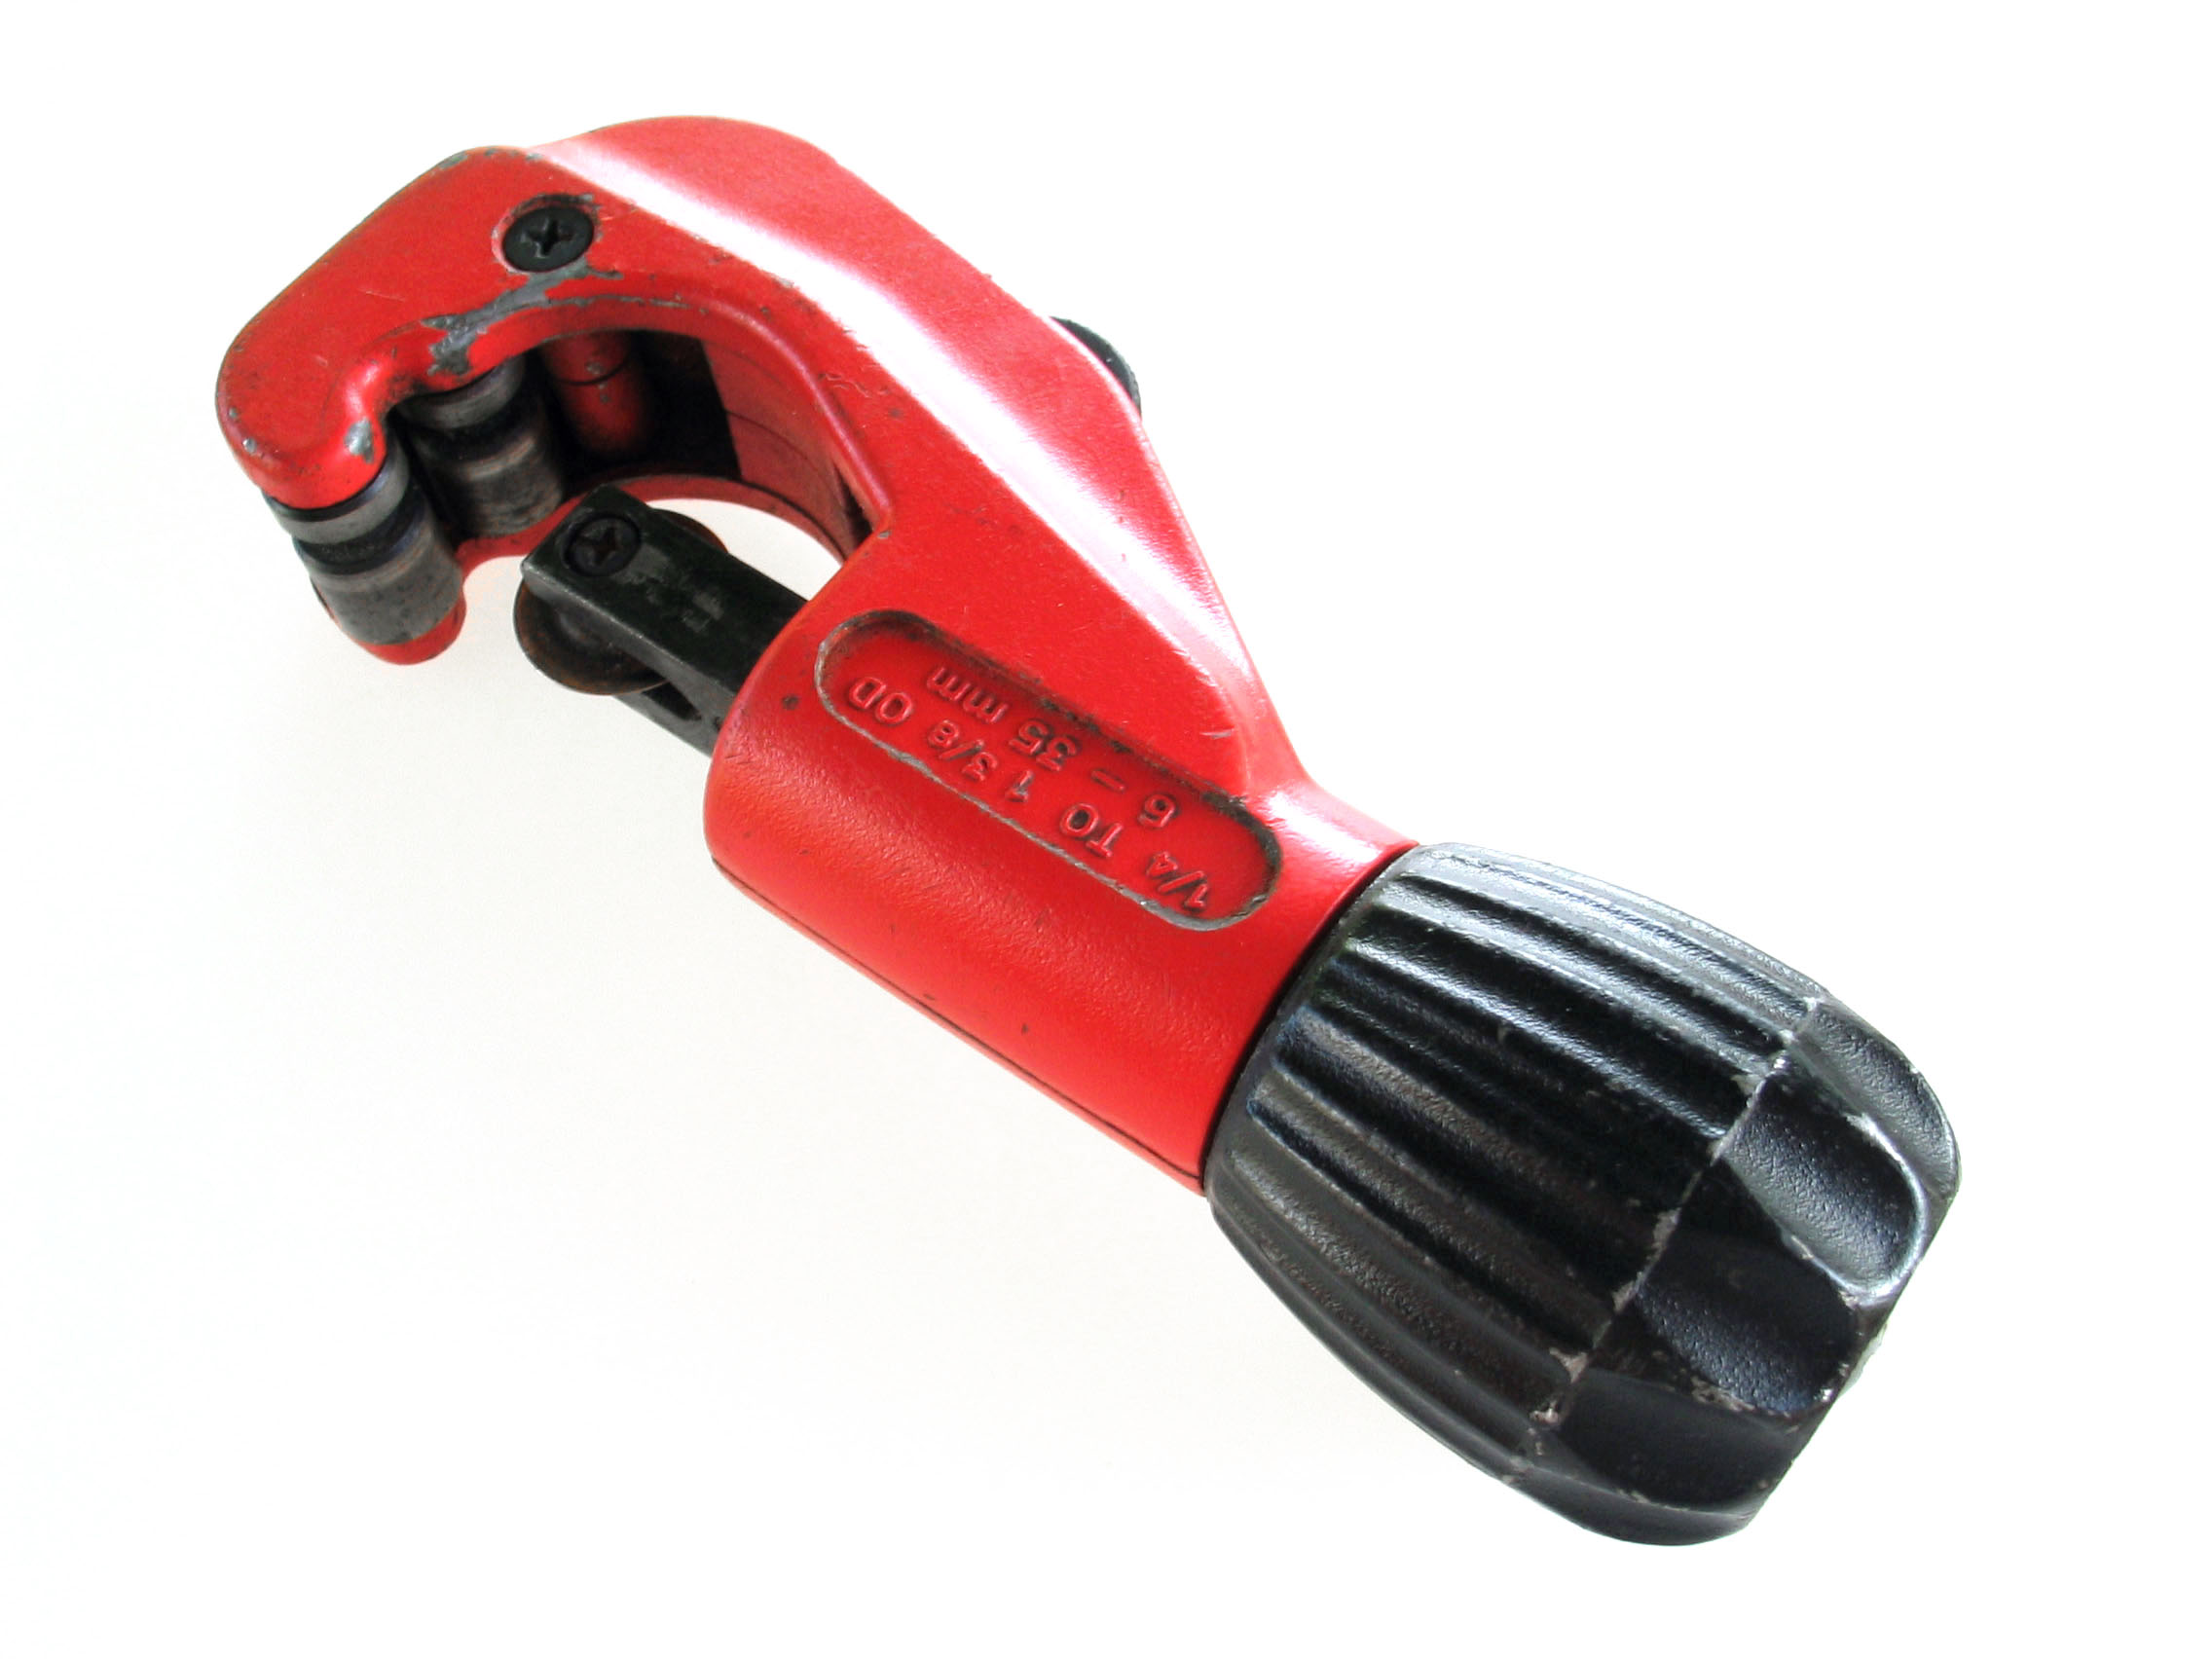 Pipecutter Wikipedia Diagram General Plumbing And Piping